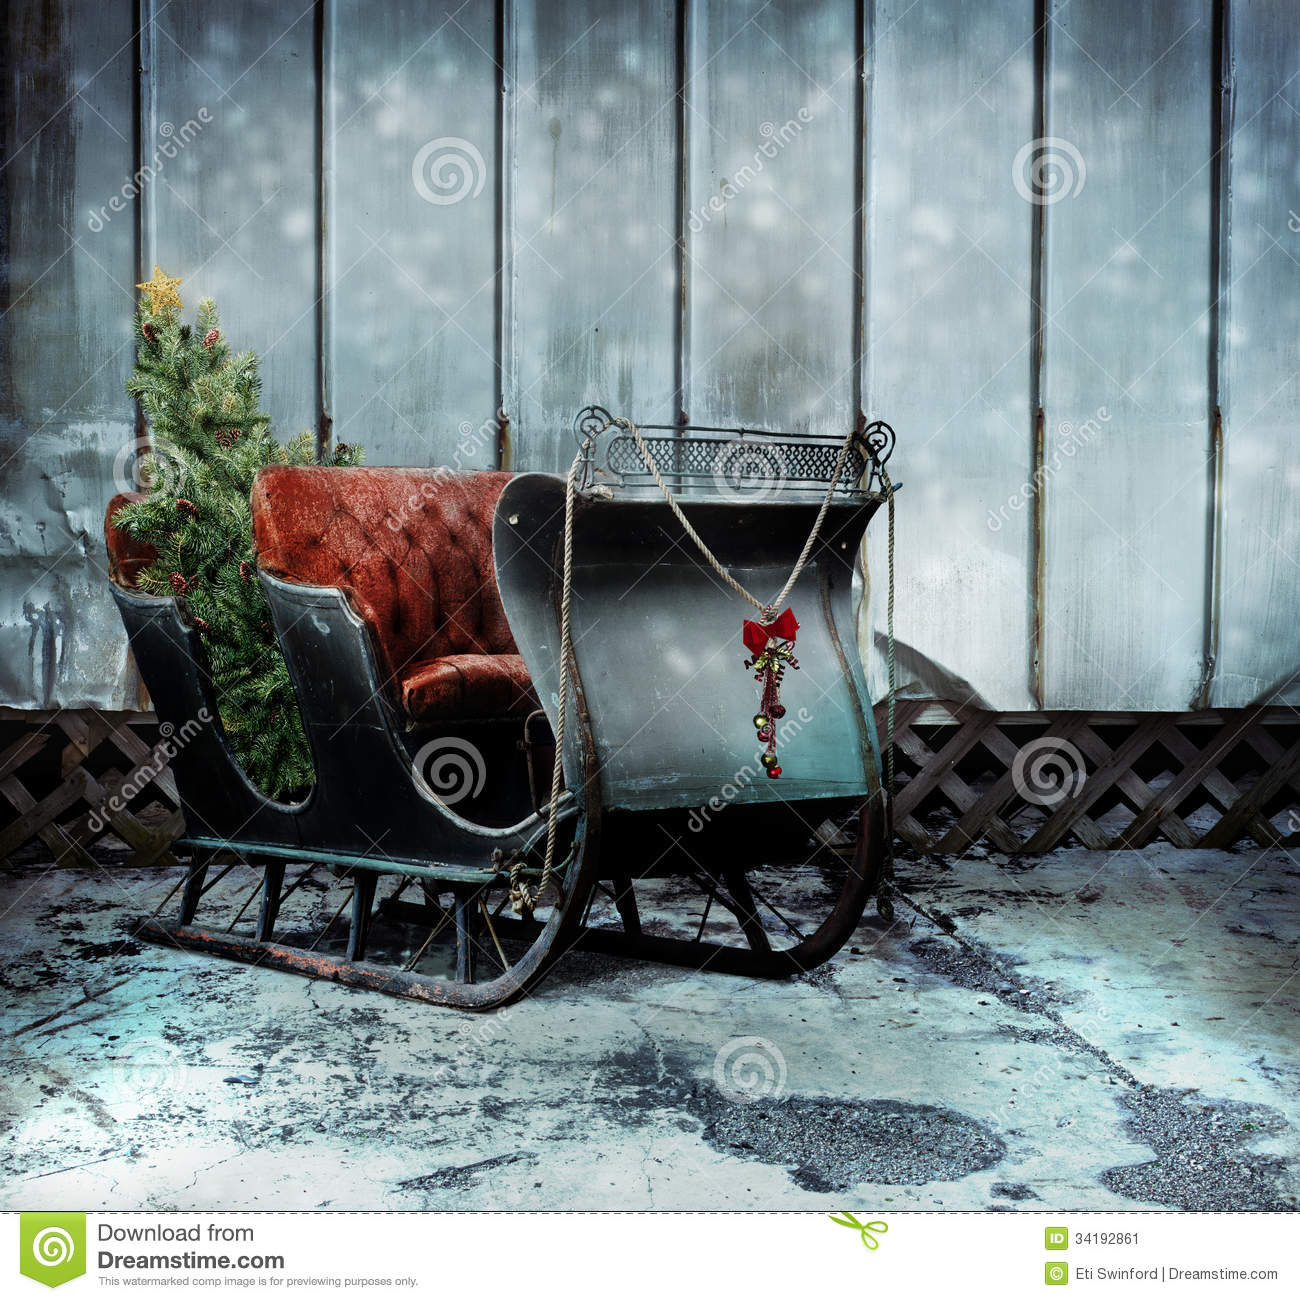 Christmas sleigh stock image Image of décor cart